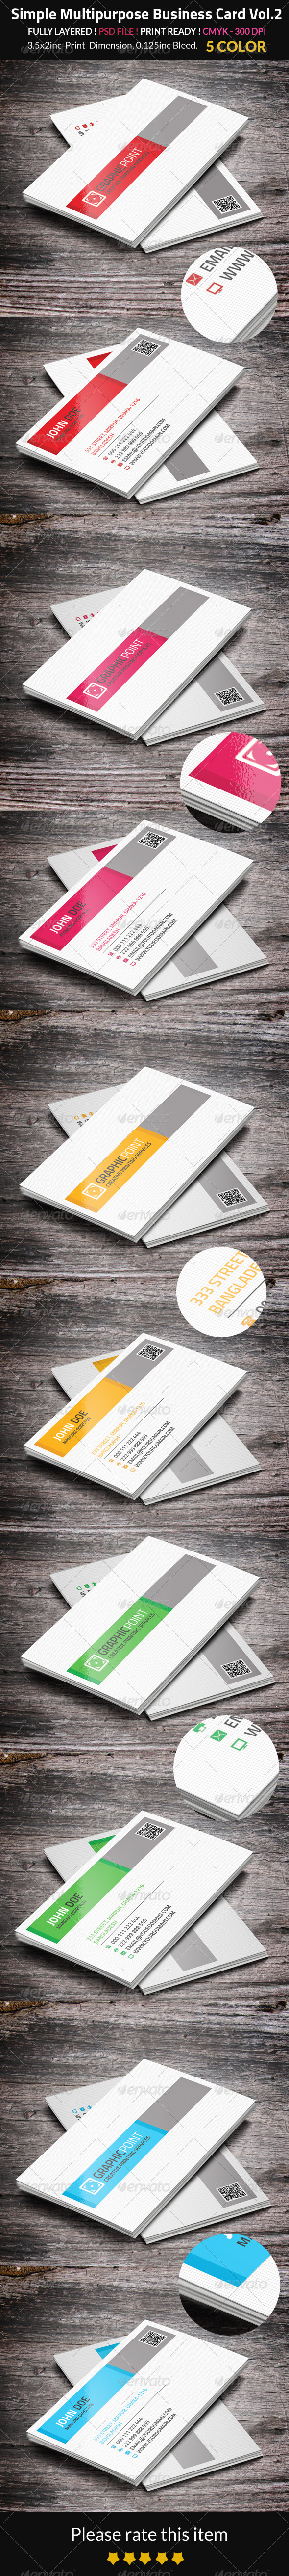 GraphicRiver Simple Multipurpose Business Card Vol.2 8541943